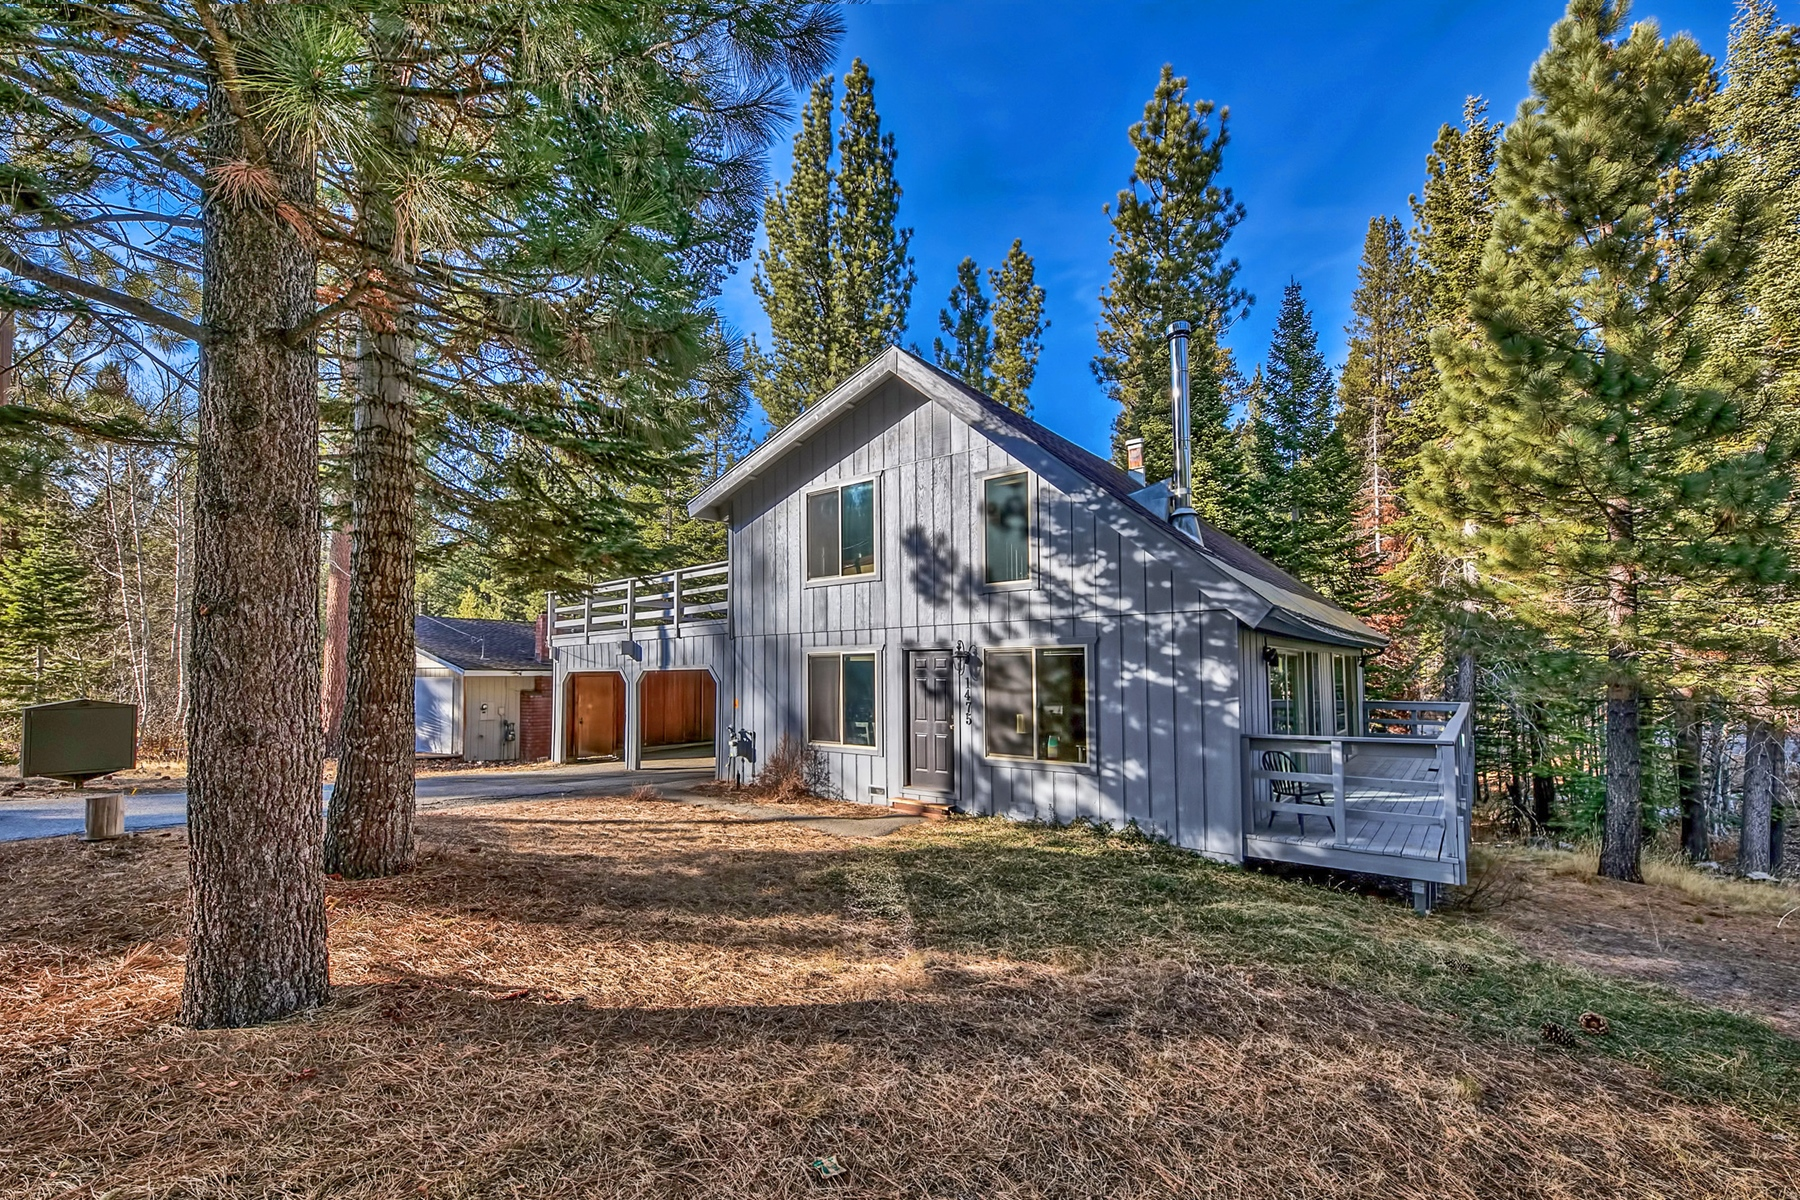 Property por un Venta en 1475 Vanderhoof Road, South Lake Tahoe, Ca 96150 1475 Vanderhoof Road South Lake Tahoe, California 96150 Estados Unidos